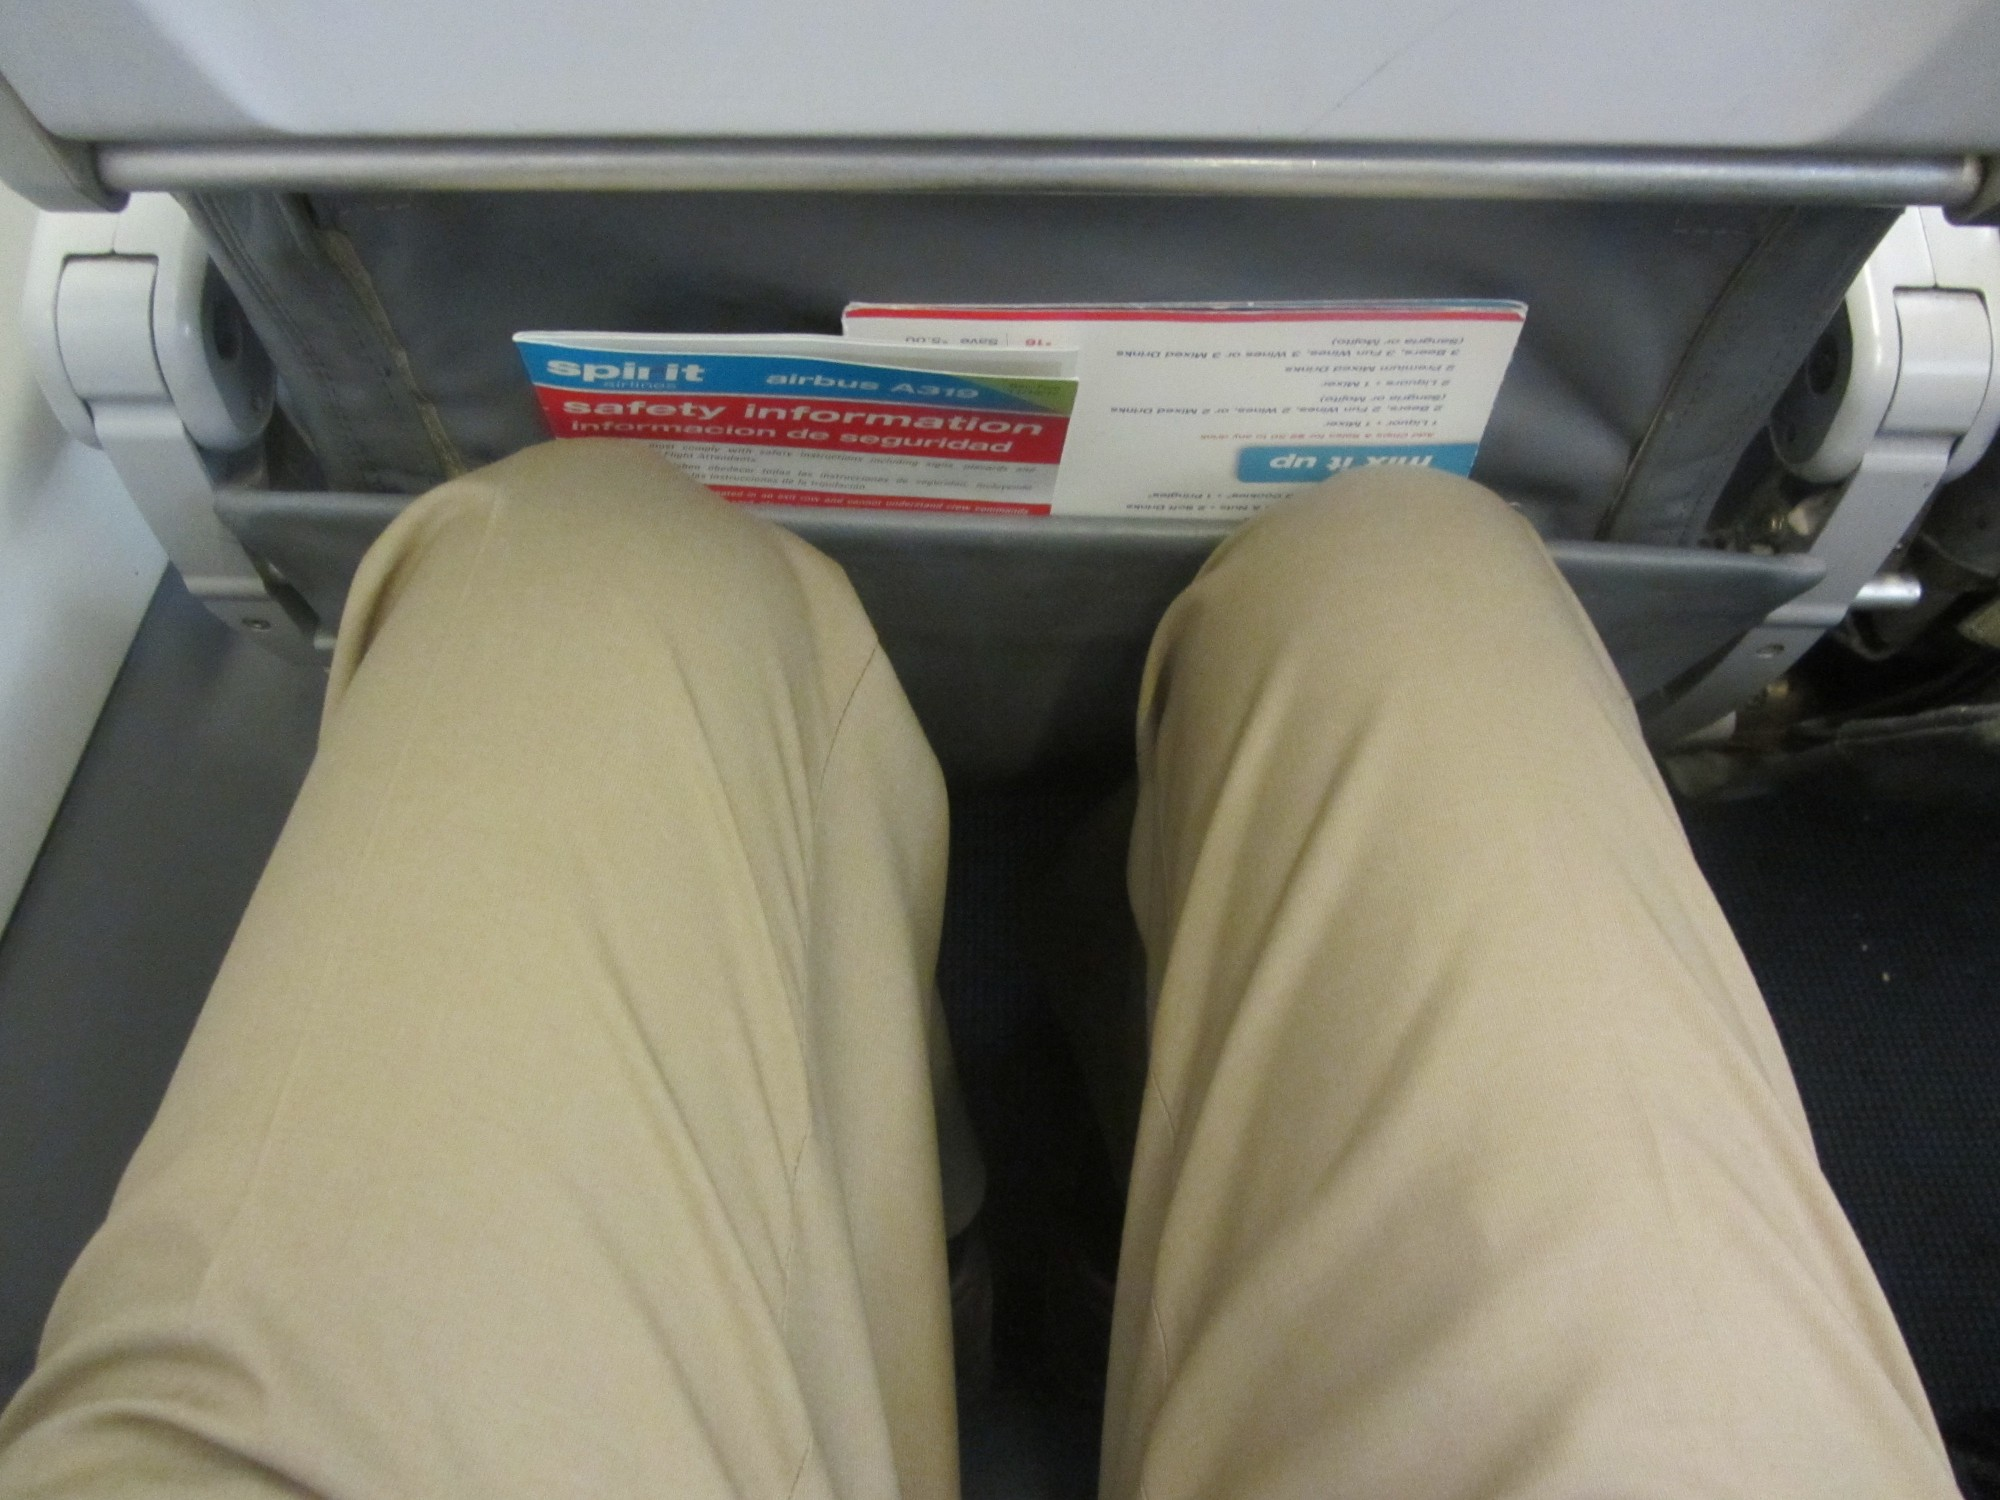 Spirit Airlines Airbus A319 100 cabin standard economy class seats pitch legroom photos